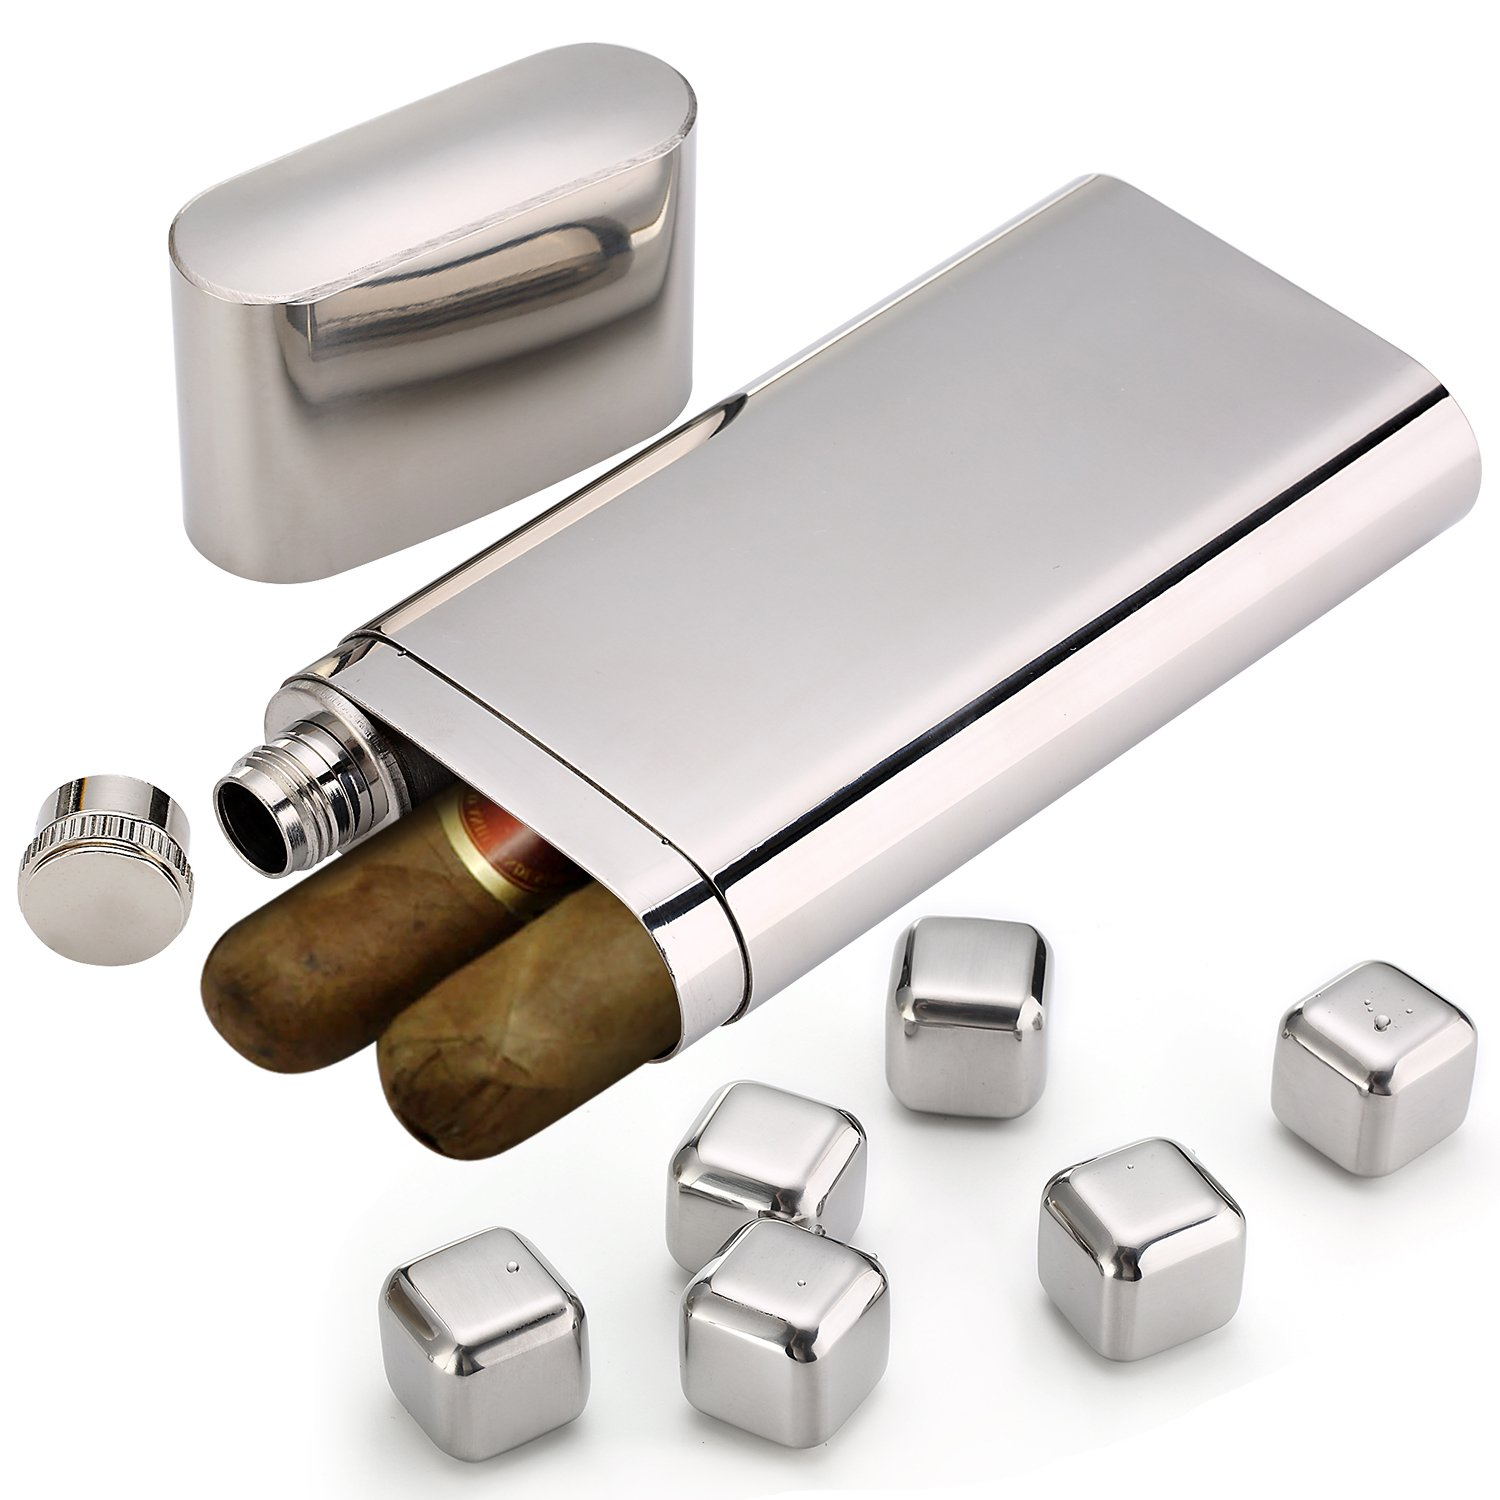 Stainless Steel Chilling Rocks / Stones (8) + Dual Cigar Flask (1) [Gift Set] + Funnel (1) + Tongs (1) [FDA Approved] by YazyCraft (Image #4)